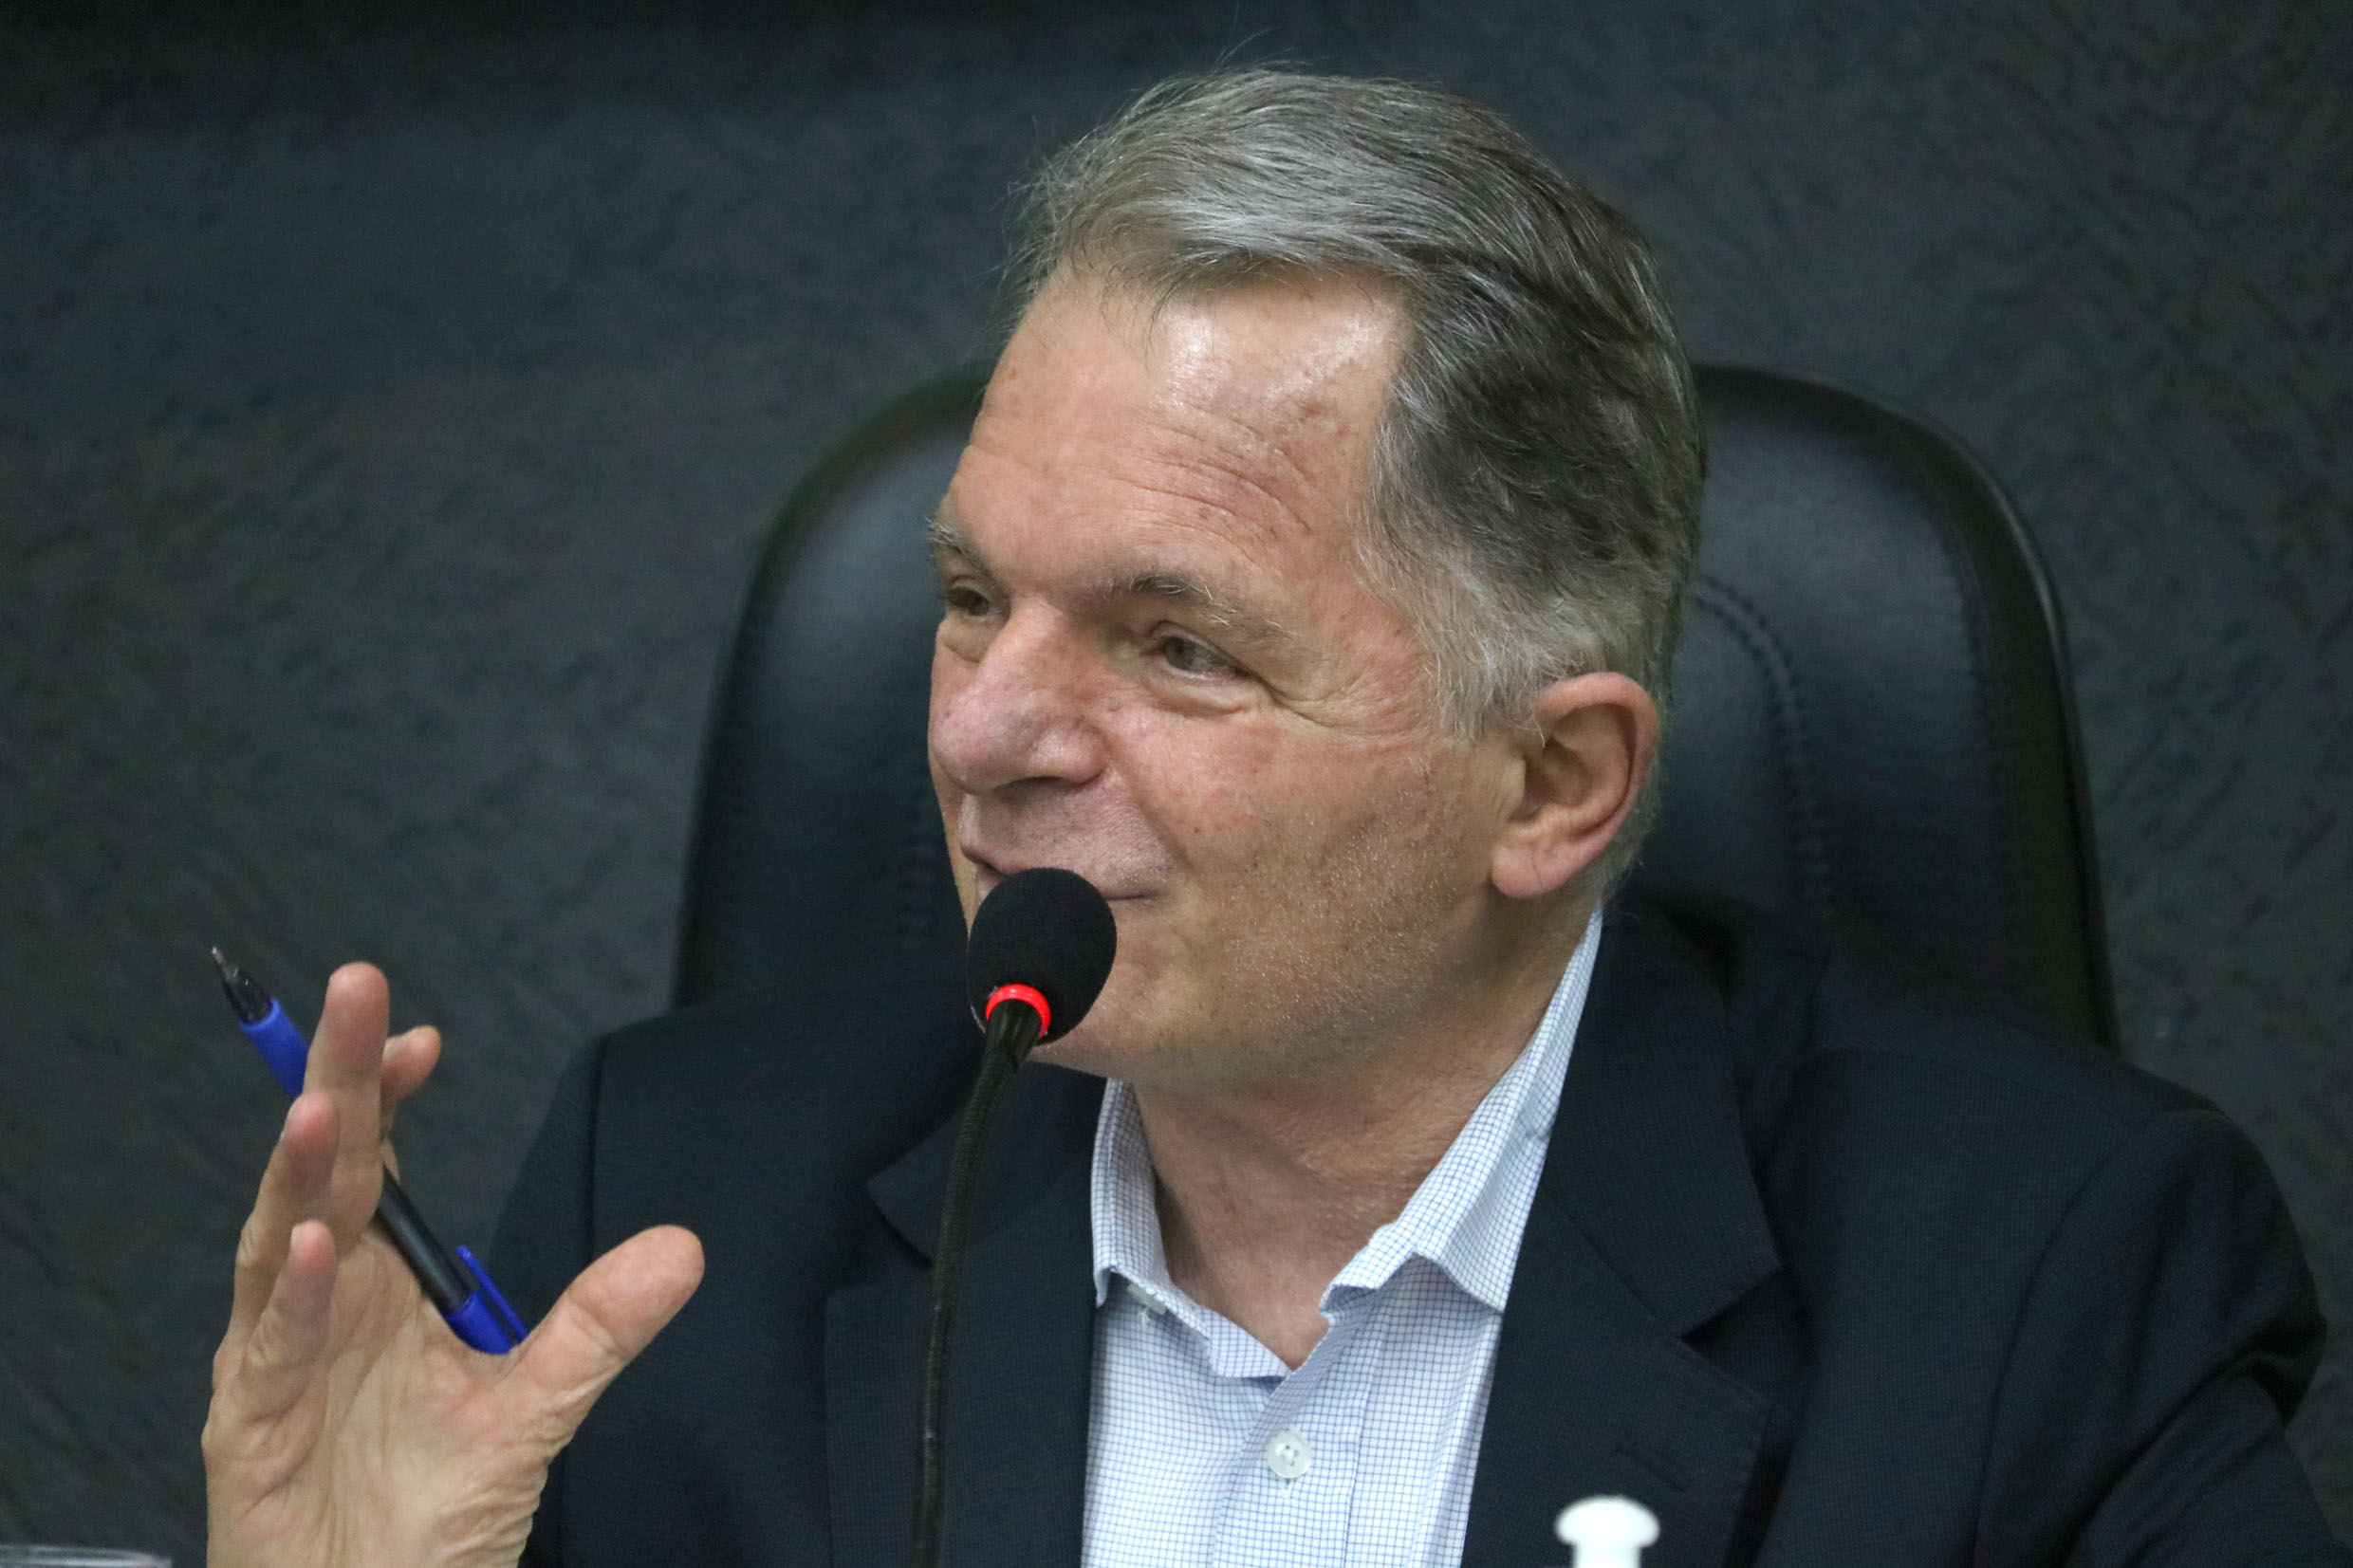 Mauro Bragato<a style='float:right' href='https://www3.al.sp.gov.br/repositorio/noticia/N-10-2021/fg275641.jpg' target=_blank><img src='/_img/material-file-download-white.png' width='14px' alt='Clique para baixar a imagem'></a>